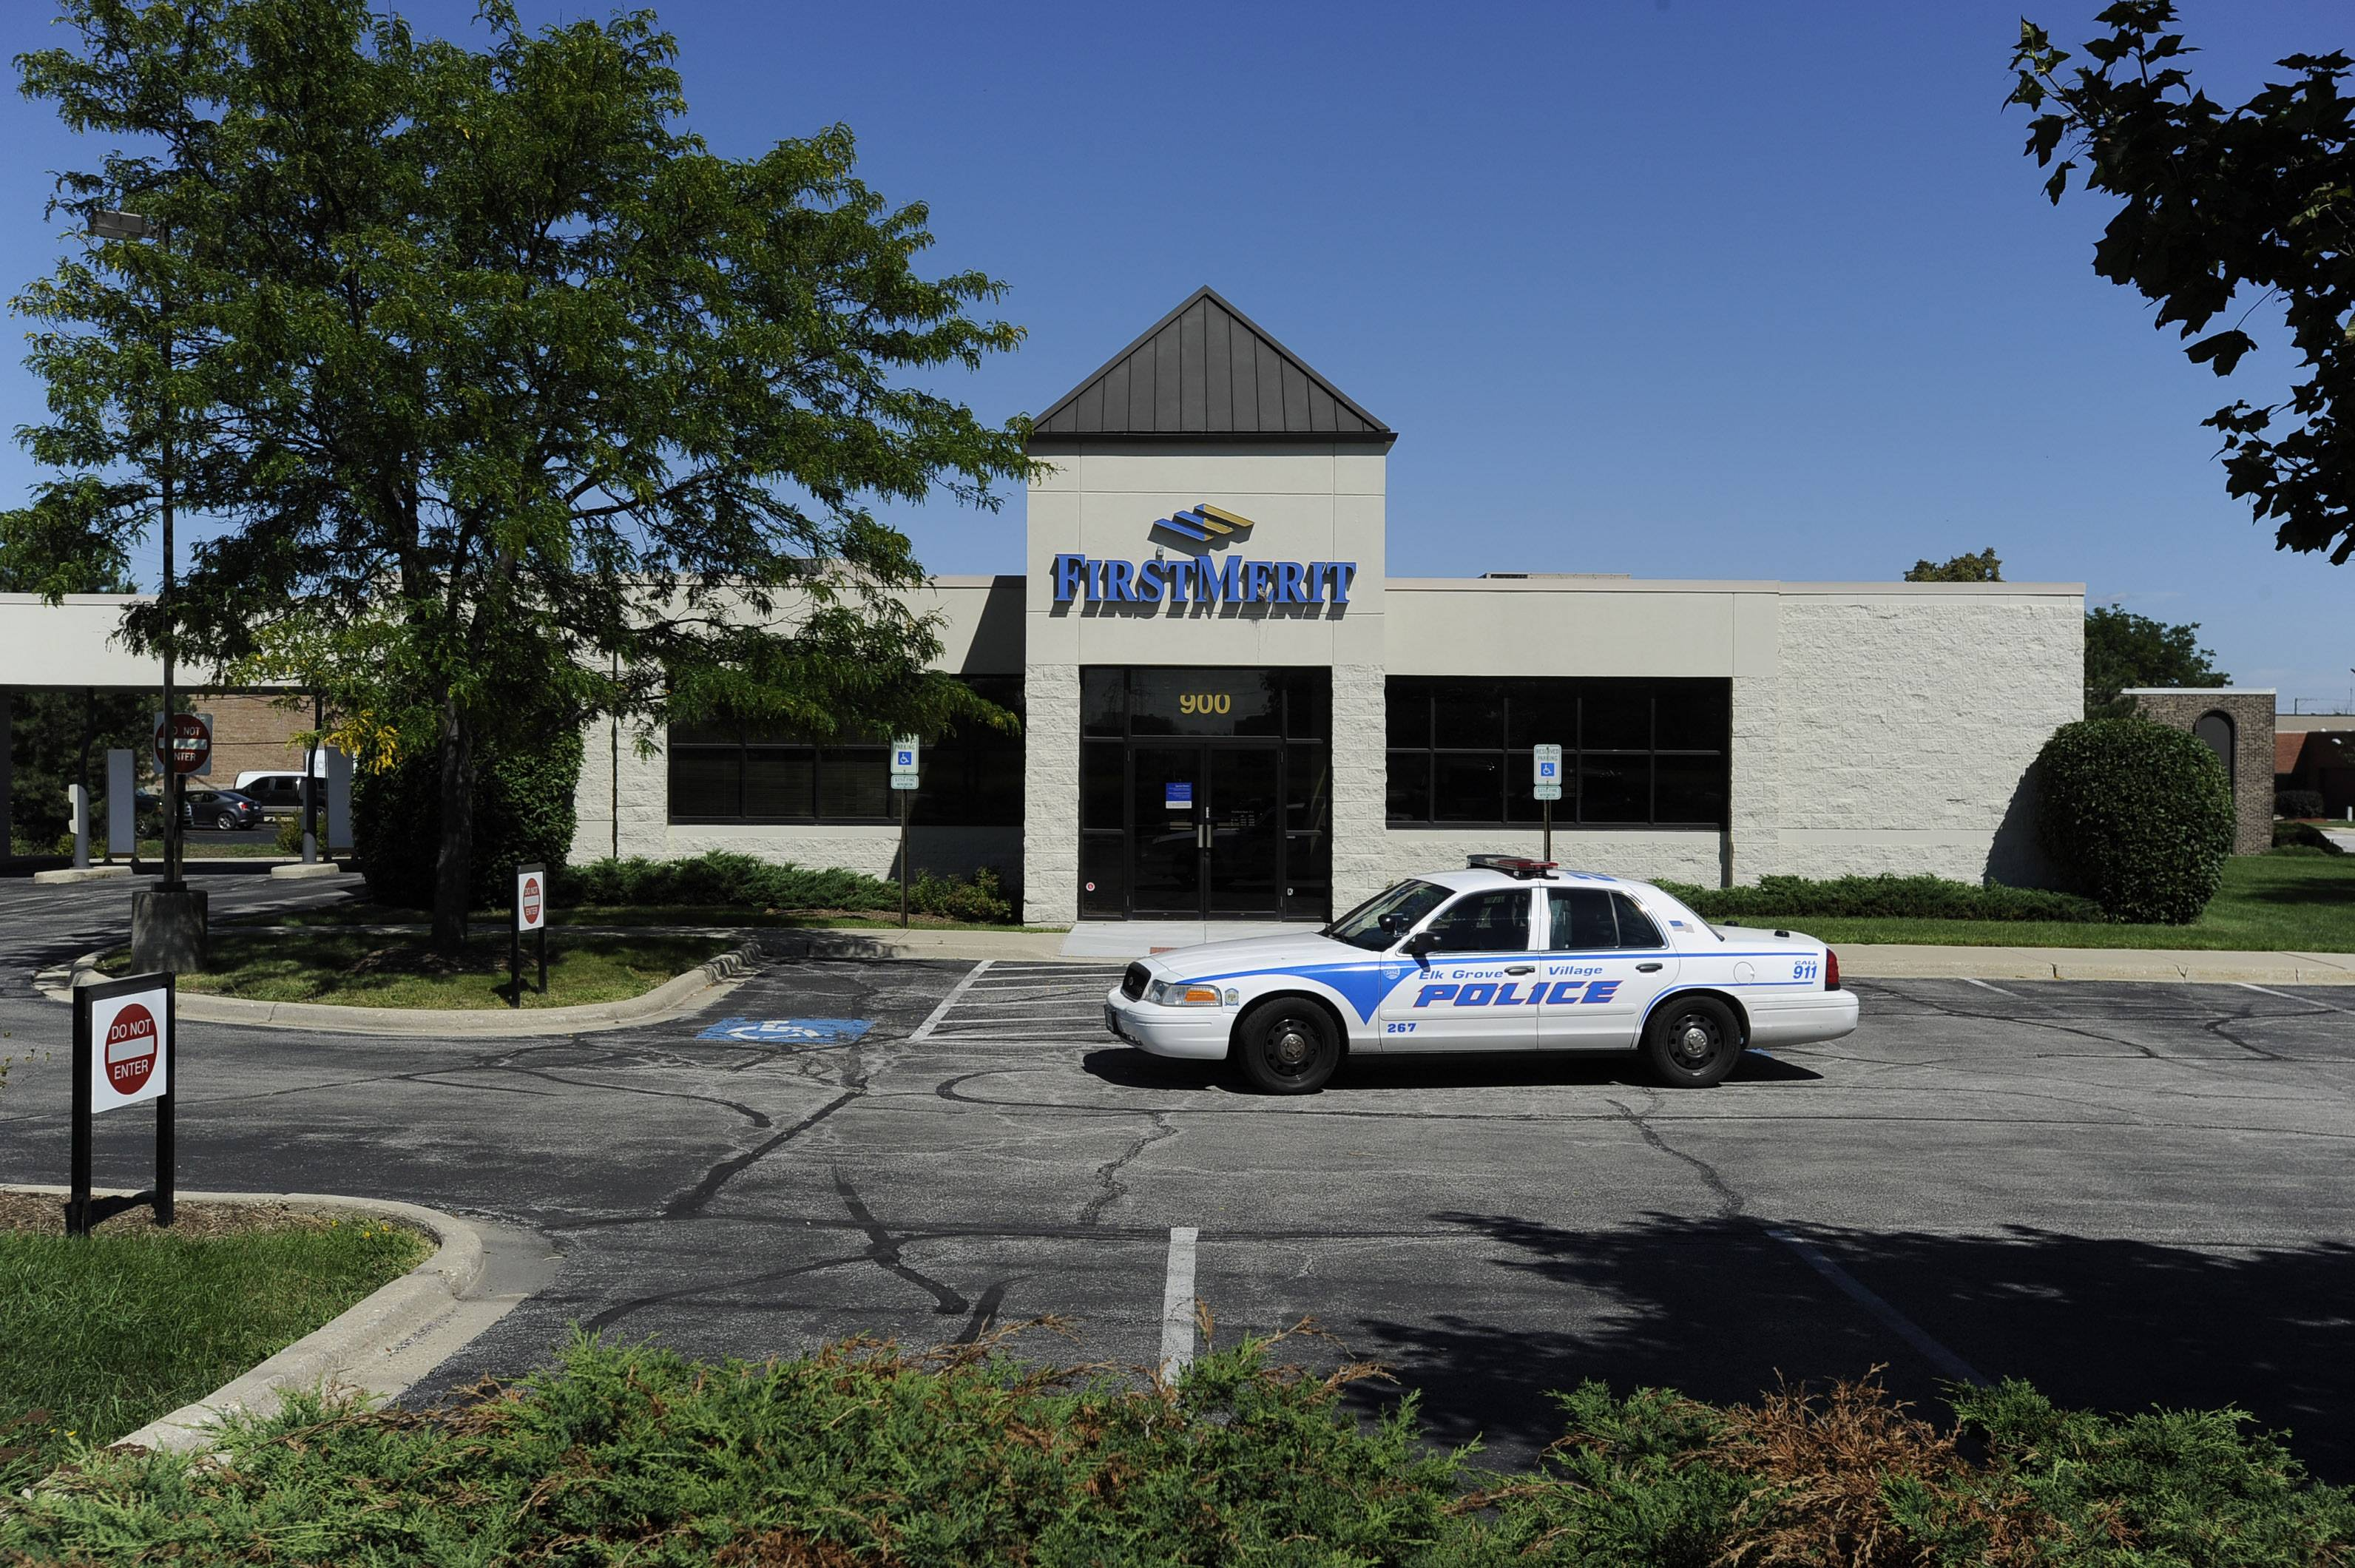 Elk Grove Village police were called to the scene of a robbery at 10:45 a.m. Wednesday at First Merit Bank in Elk Grove Village.